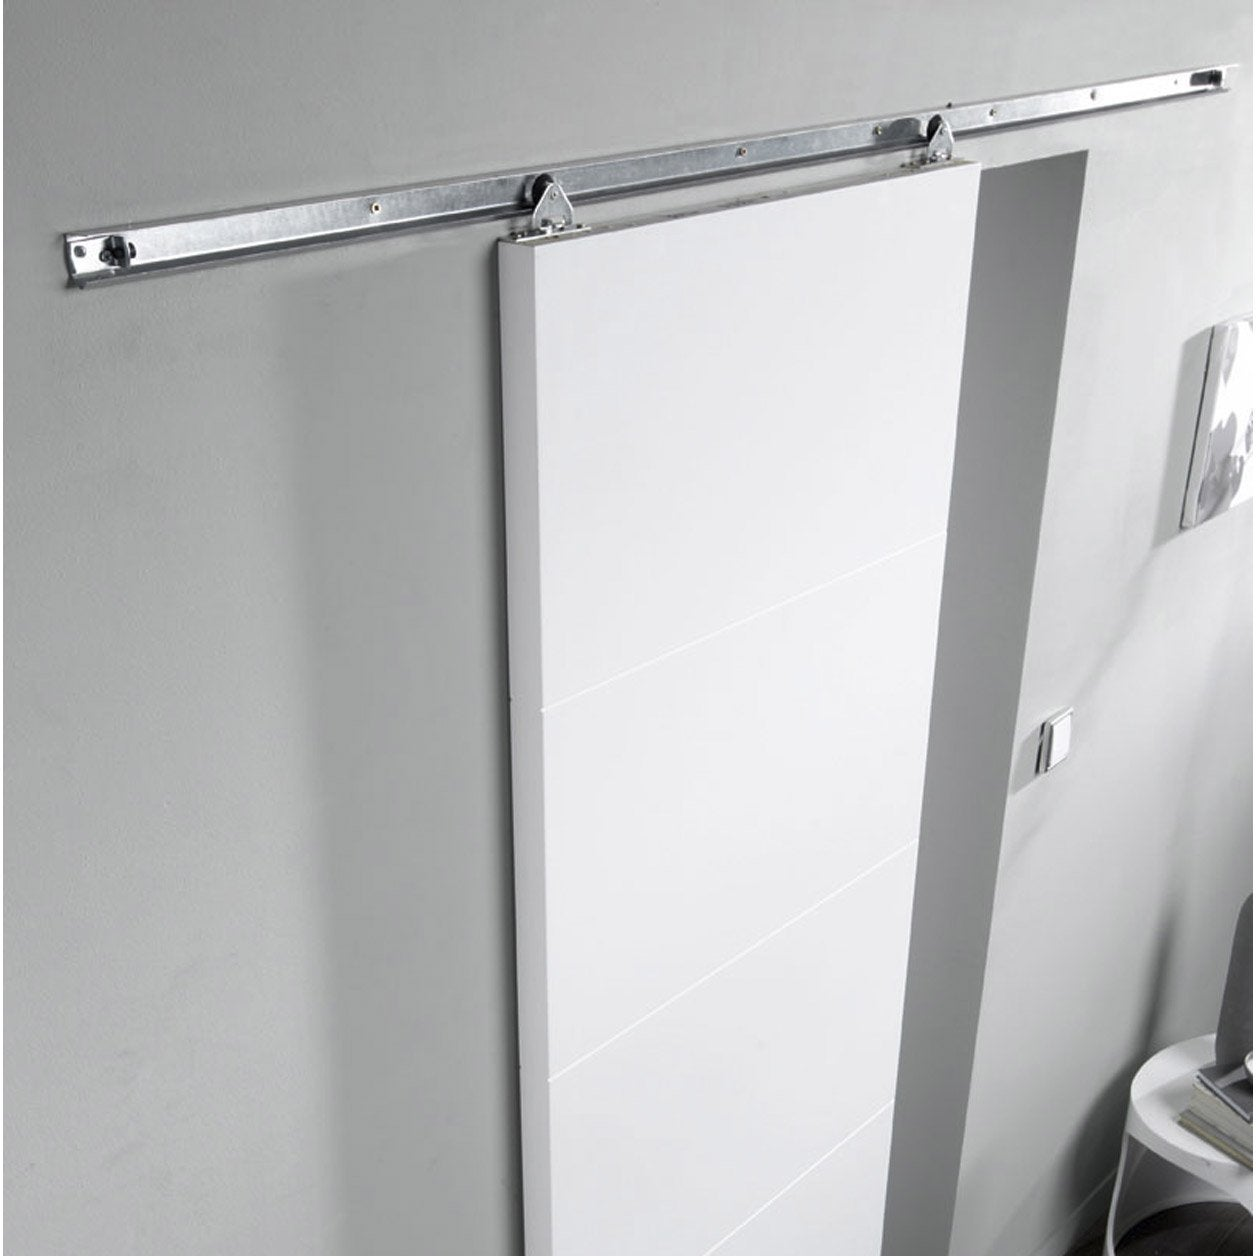 Rail coulissant salsa pour porte de largeur 93 cm maximum - Porte leroy merlin interieur ...